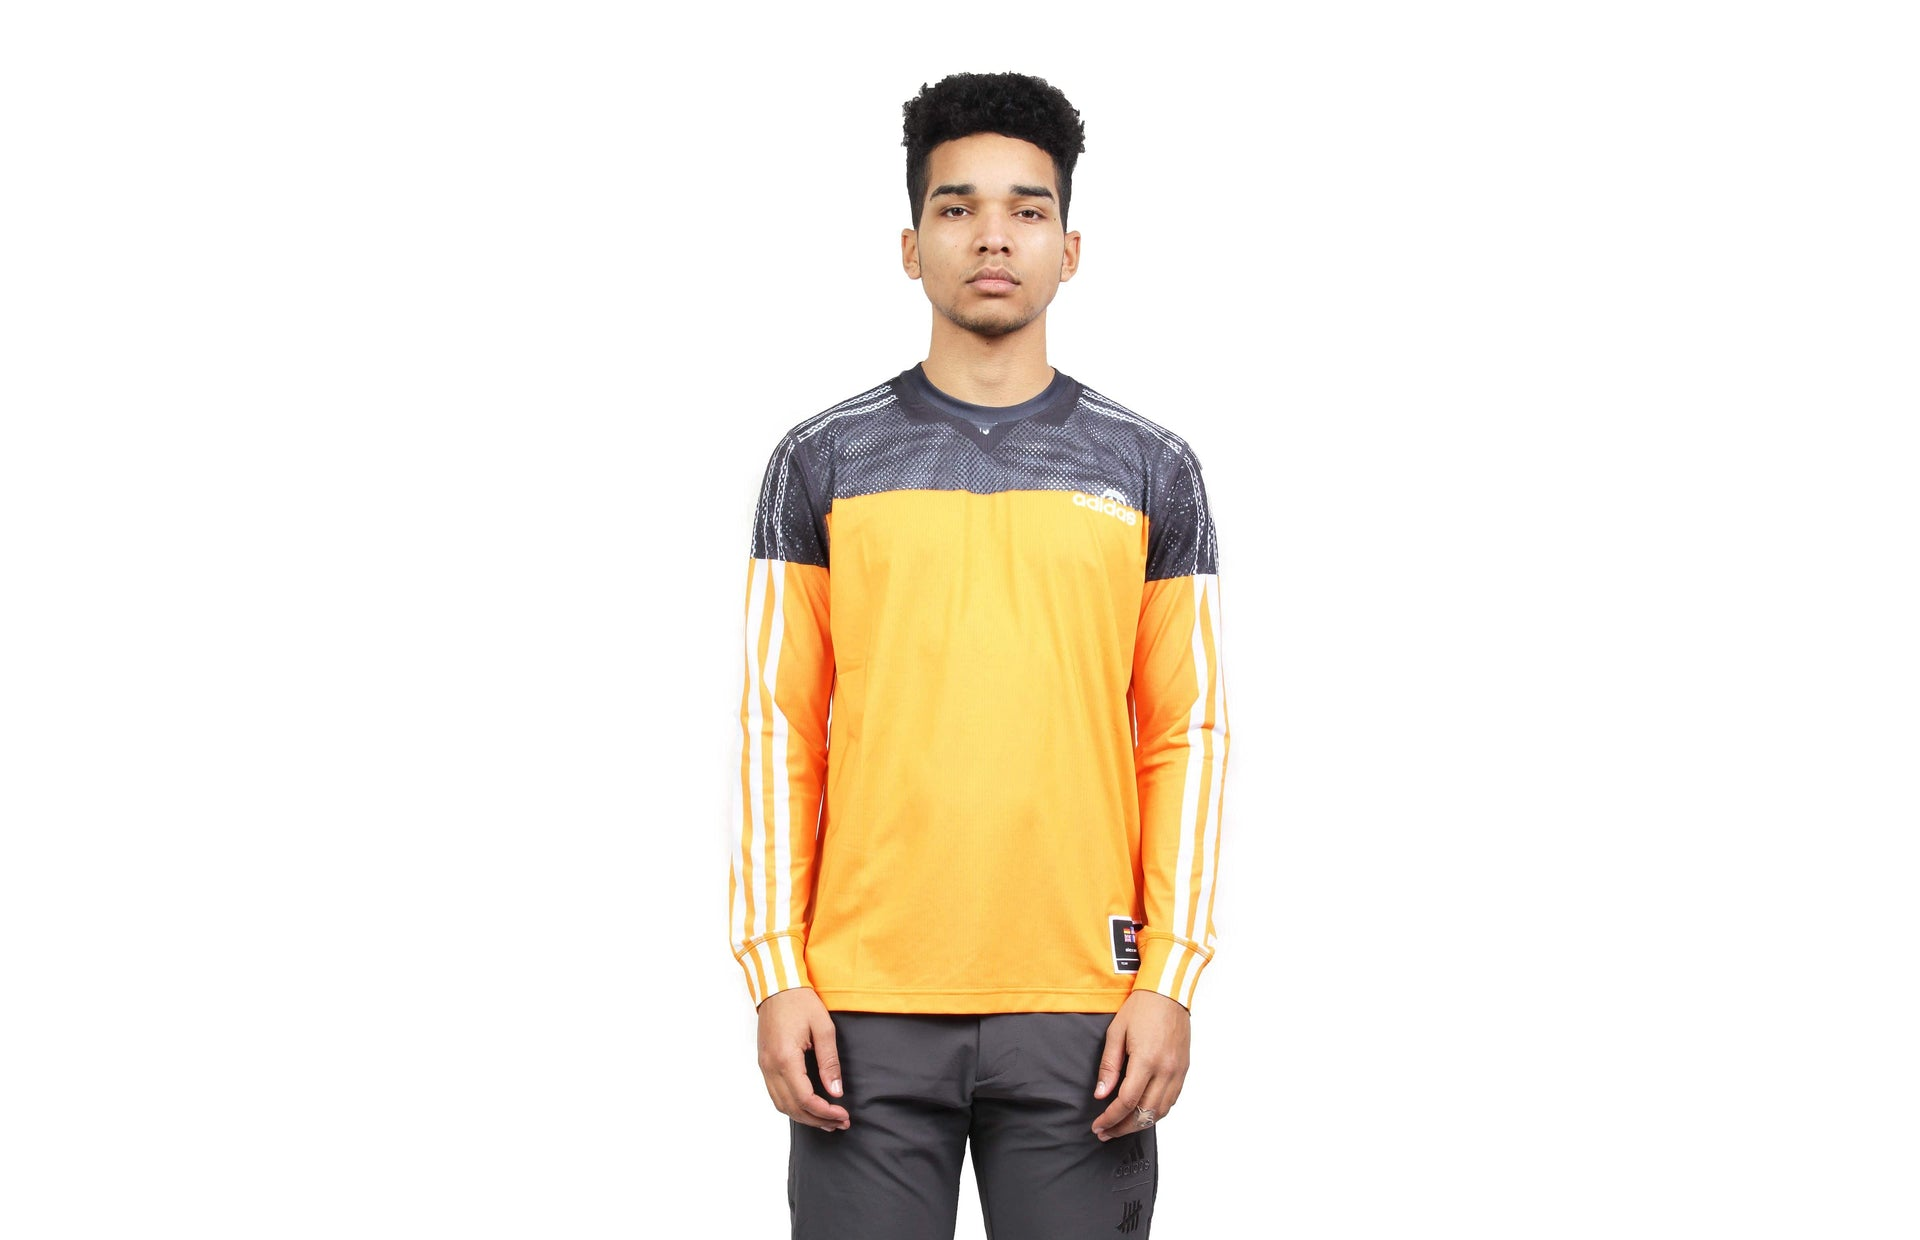 PHOTOCOPY LS - DT945 MENS SOFTGOODS ADIDAS TACYEL S